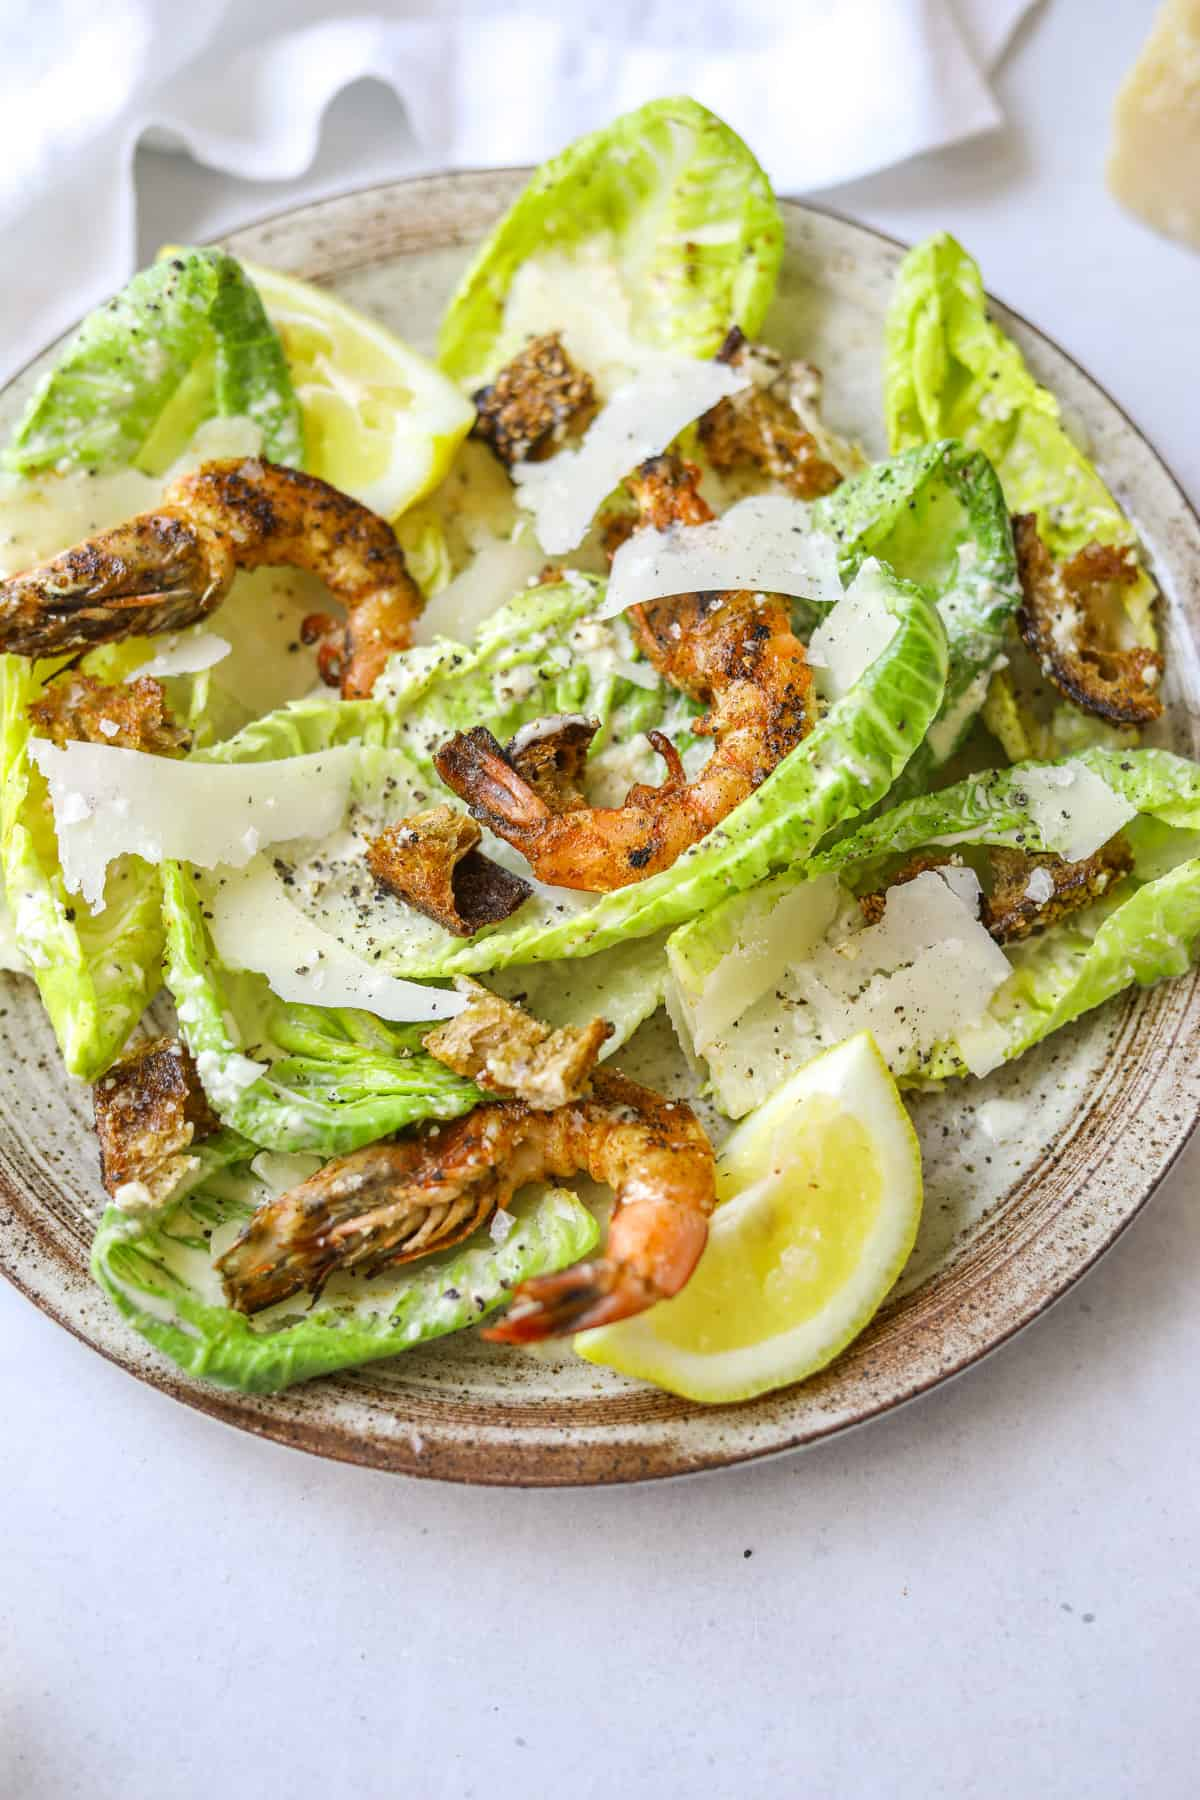 a close up image of grilled shrimp caesar salad with shaved parmesan cheese and a lemon wedge on a speckled ceramic plate